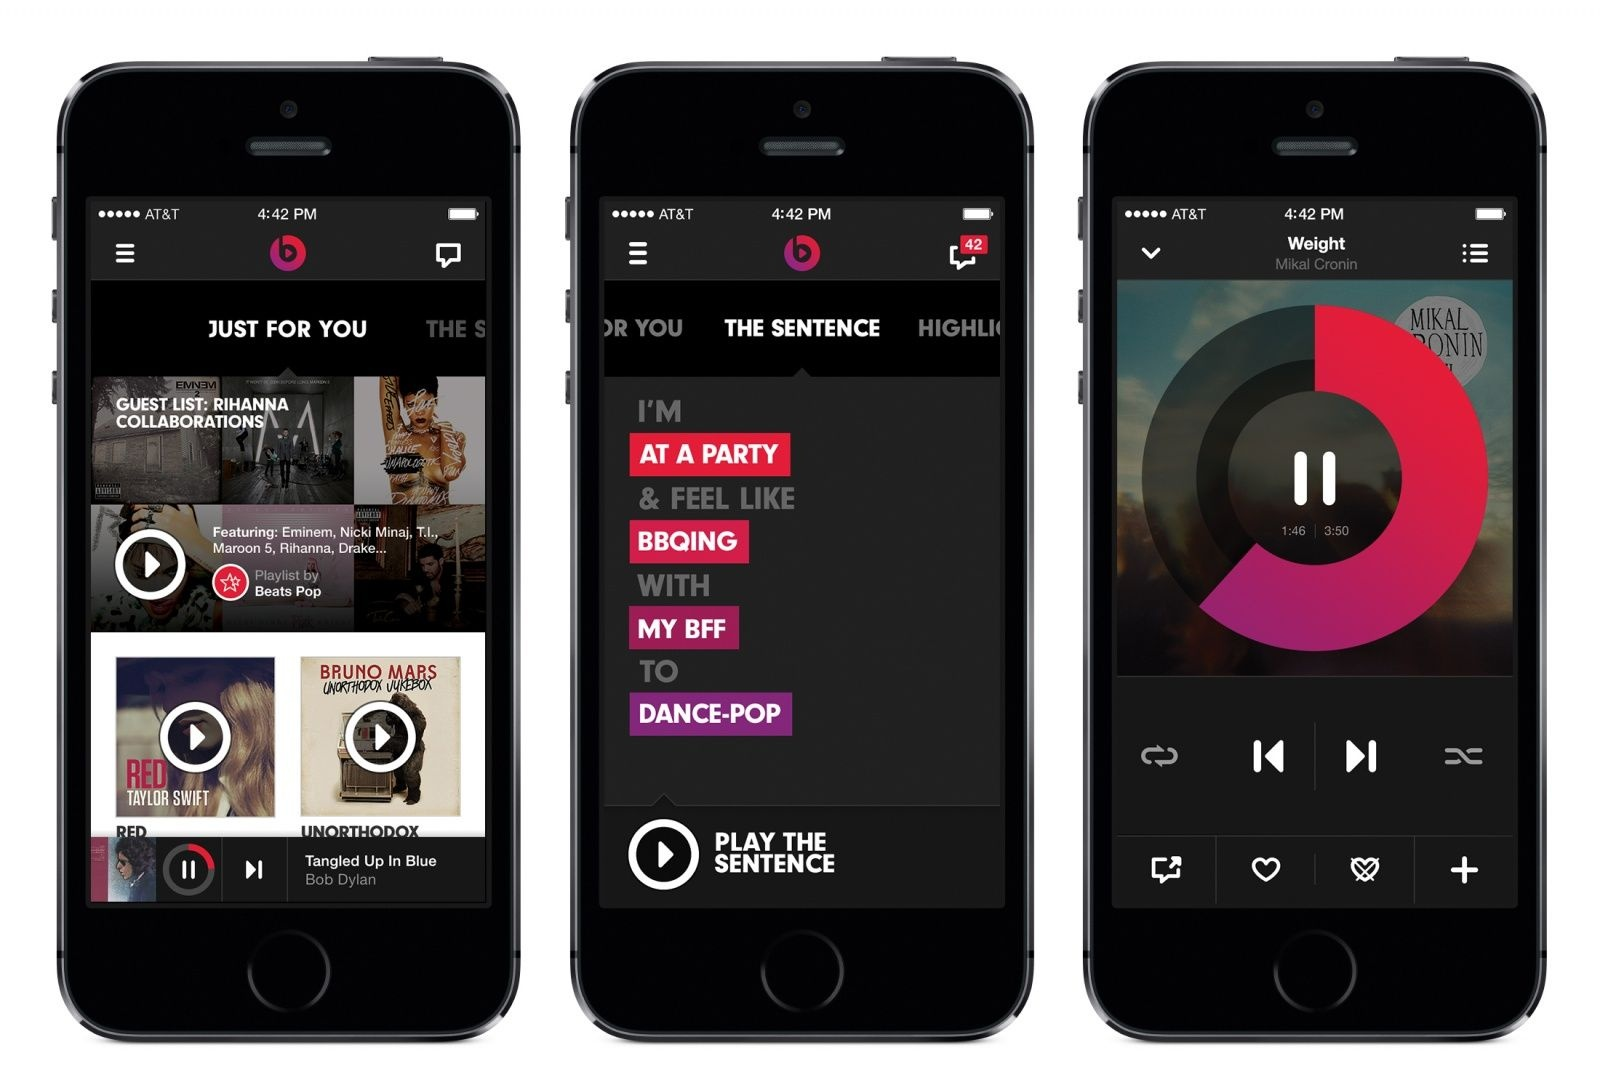 apple-is-killing-beats-music-this-month-image-cultofandroidcomwp-contentuploads201511beatsmusic_ios_combo-jpg